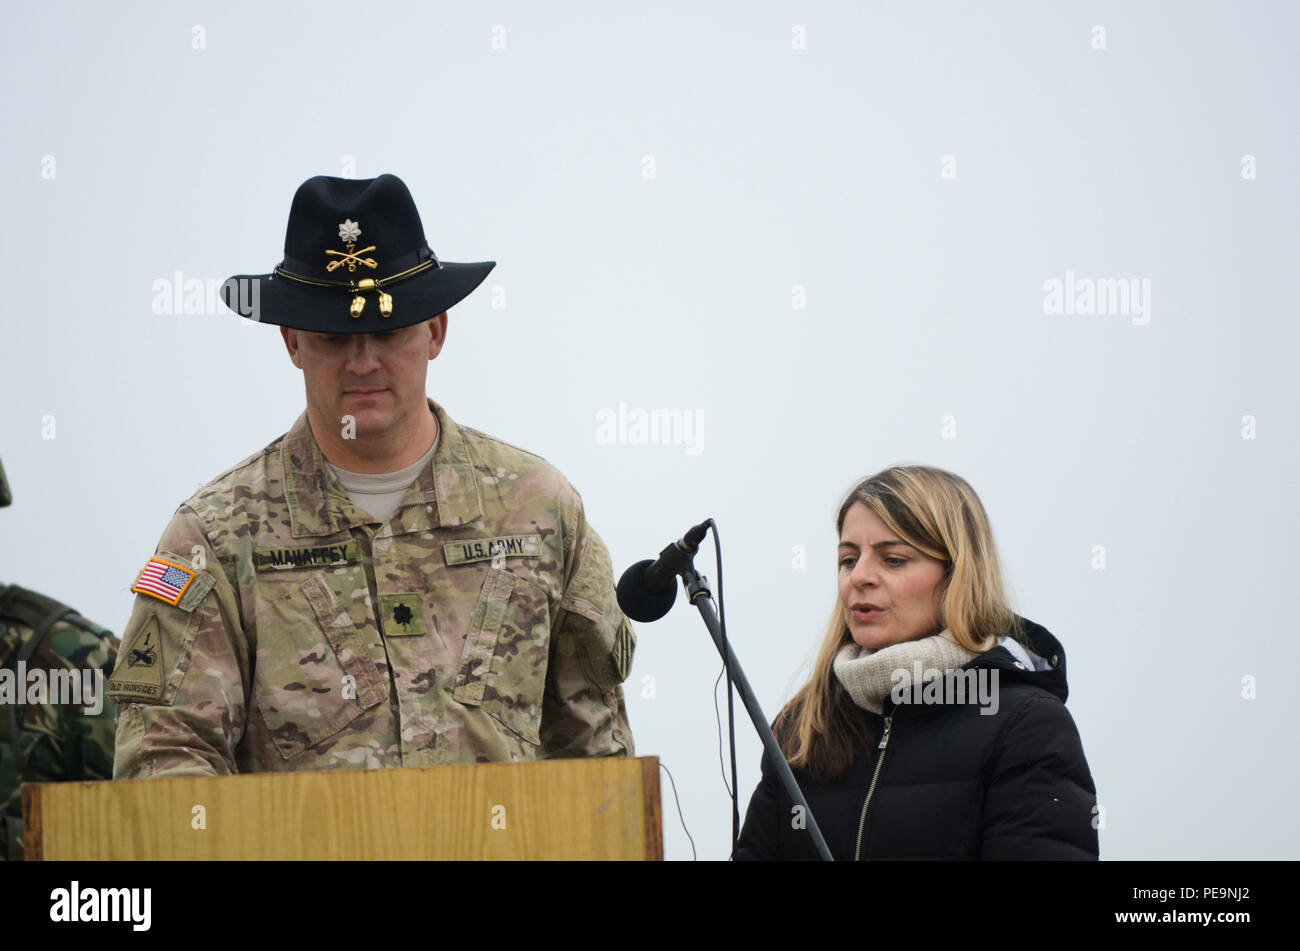 U.S. Army Lt. Col. Christopher Mahaffey, commander of 5th Squadron, 7th Cavalry Regiment, 3rd Infantry Division, stationed at Fort Stewart, Ga., comments during the closing ceremony of Exercise Peace Sentinel at Novo Selo Training Center, Bulgaria, Nov. 24, 2015. Kristina Brunson (right), a linguist, interprets the Bulgarian language into English. (U.S. Army photo by Staff Sgt. Steven M. Colvin/Released) - Stock Image